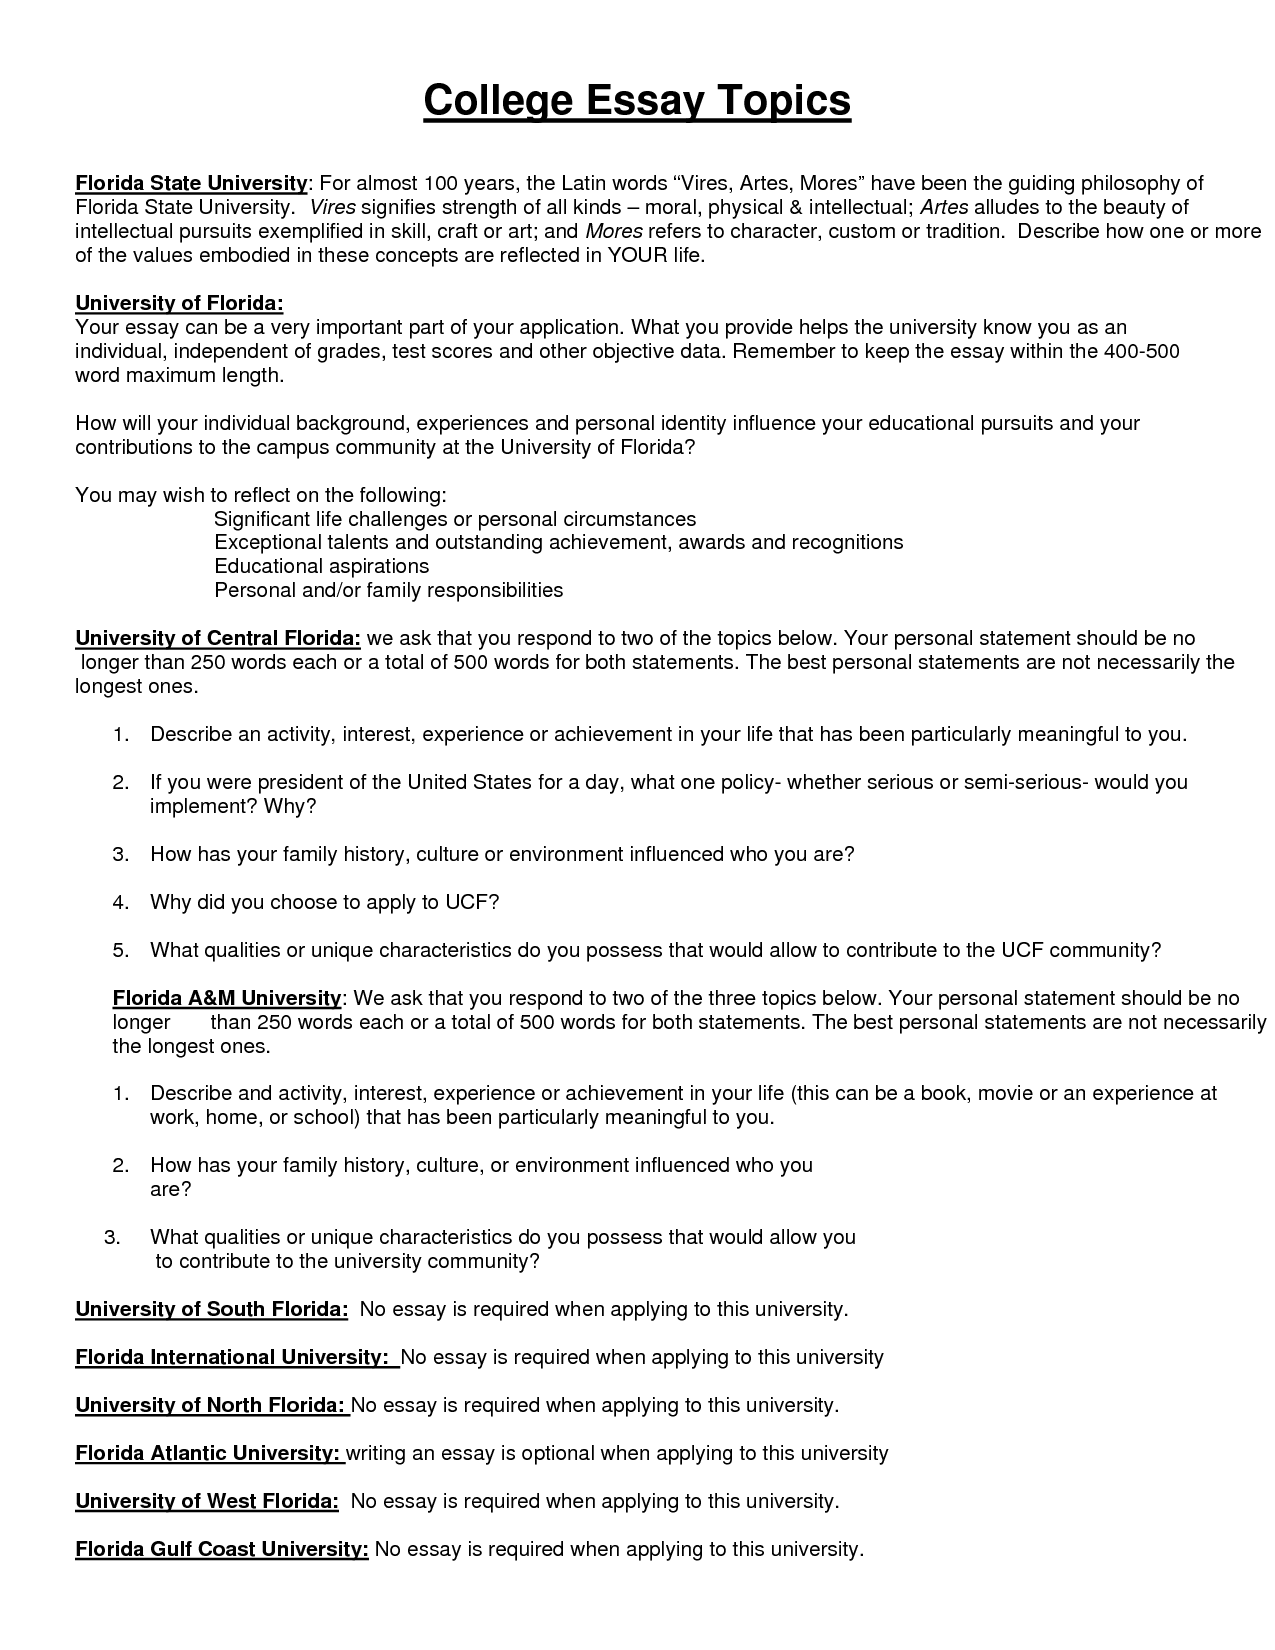 012 Prompts For Writing Essays 4khqbt5dlt Essay Best College Persuasive Opinion 4th Grade Full